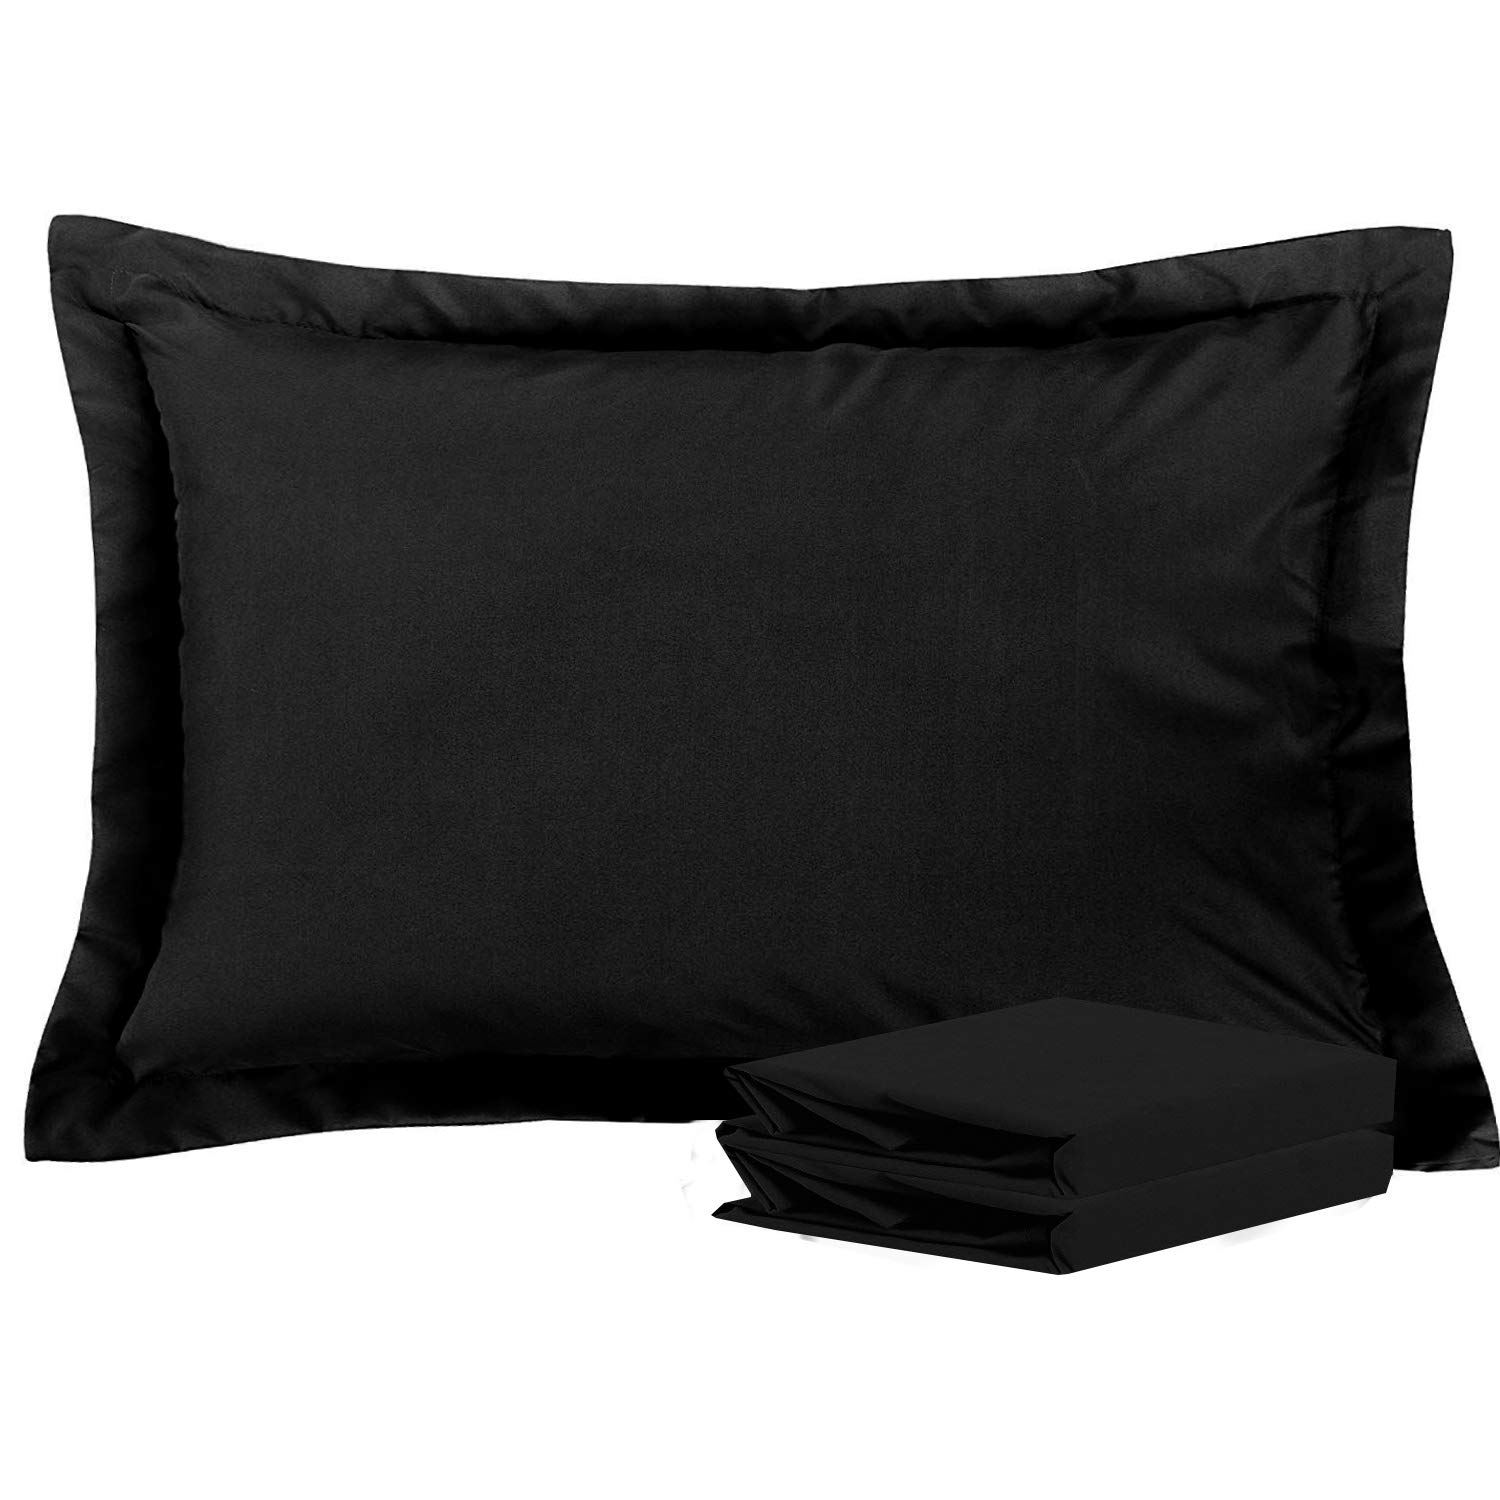 NTBAY Standard Pillow Shams, Set of 2, 100% Brushed Microfiber, Soft and Cozy, Wrinkle, Fade, Stain Resistant (Black, Standard)